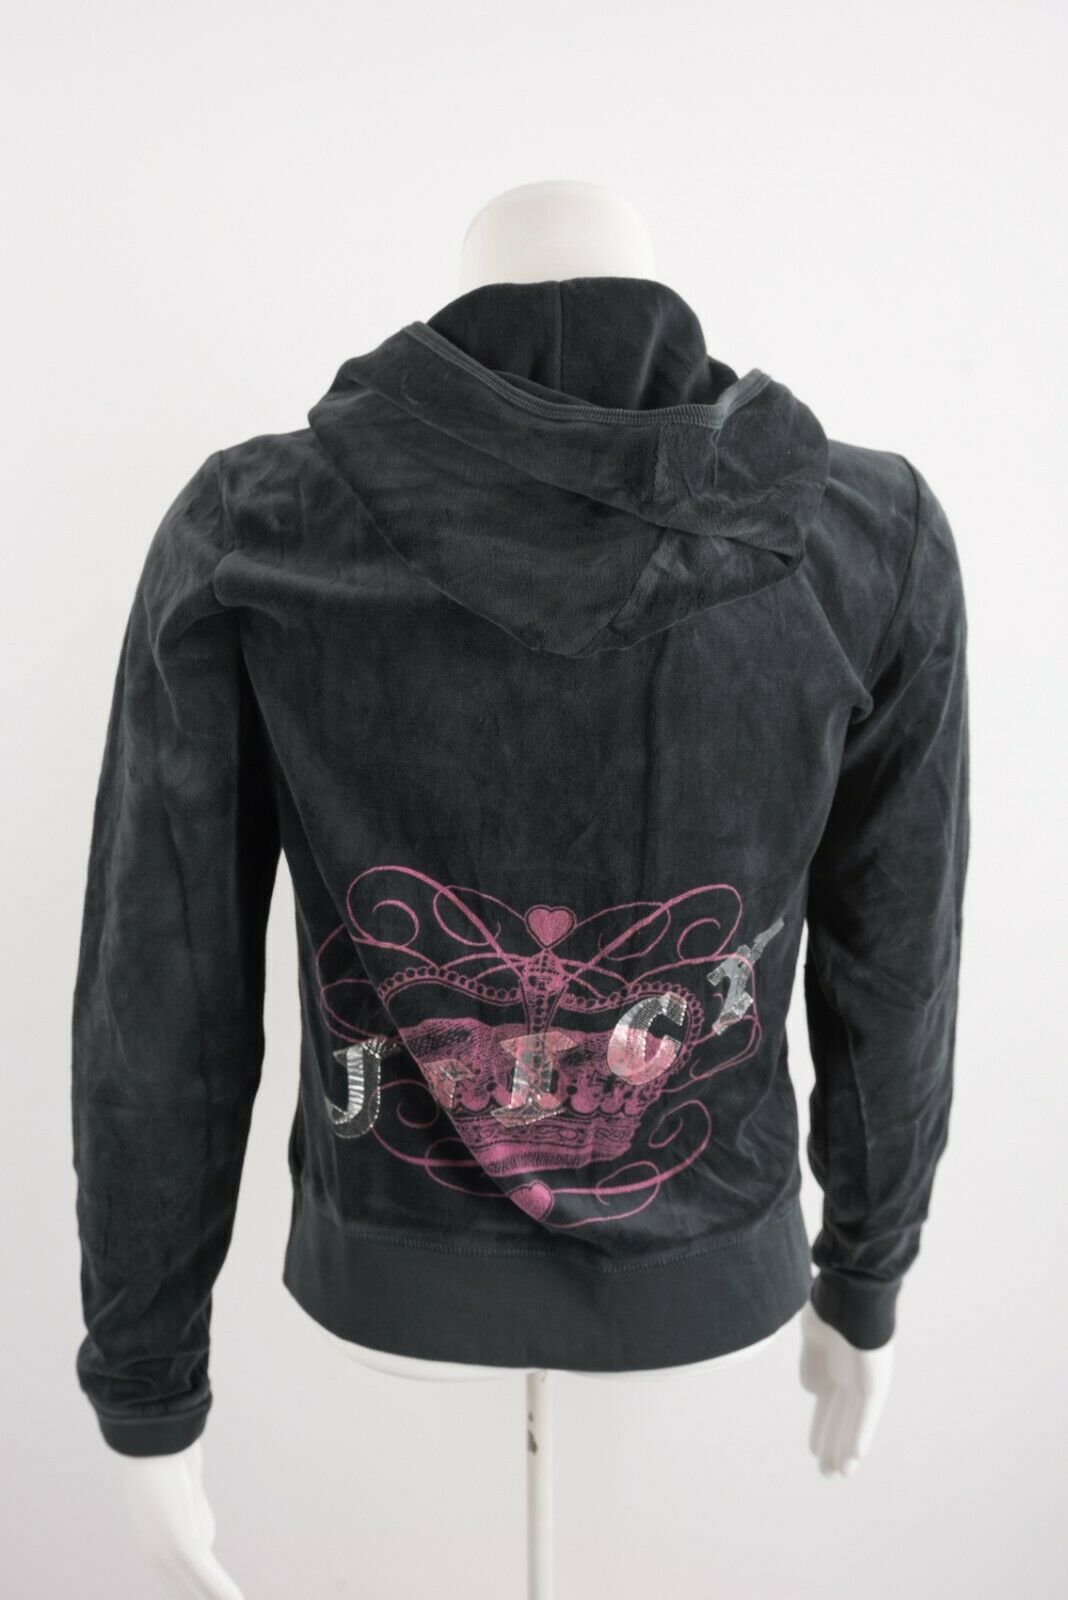 Primary image for Juicy Couture Girls Hoodie Large Gray Crown Logo spellout Hooded Zip Up Velour